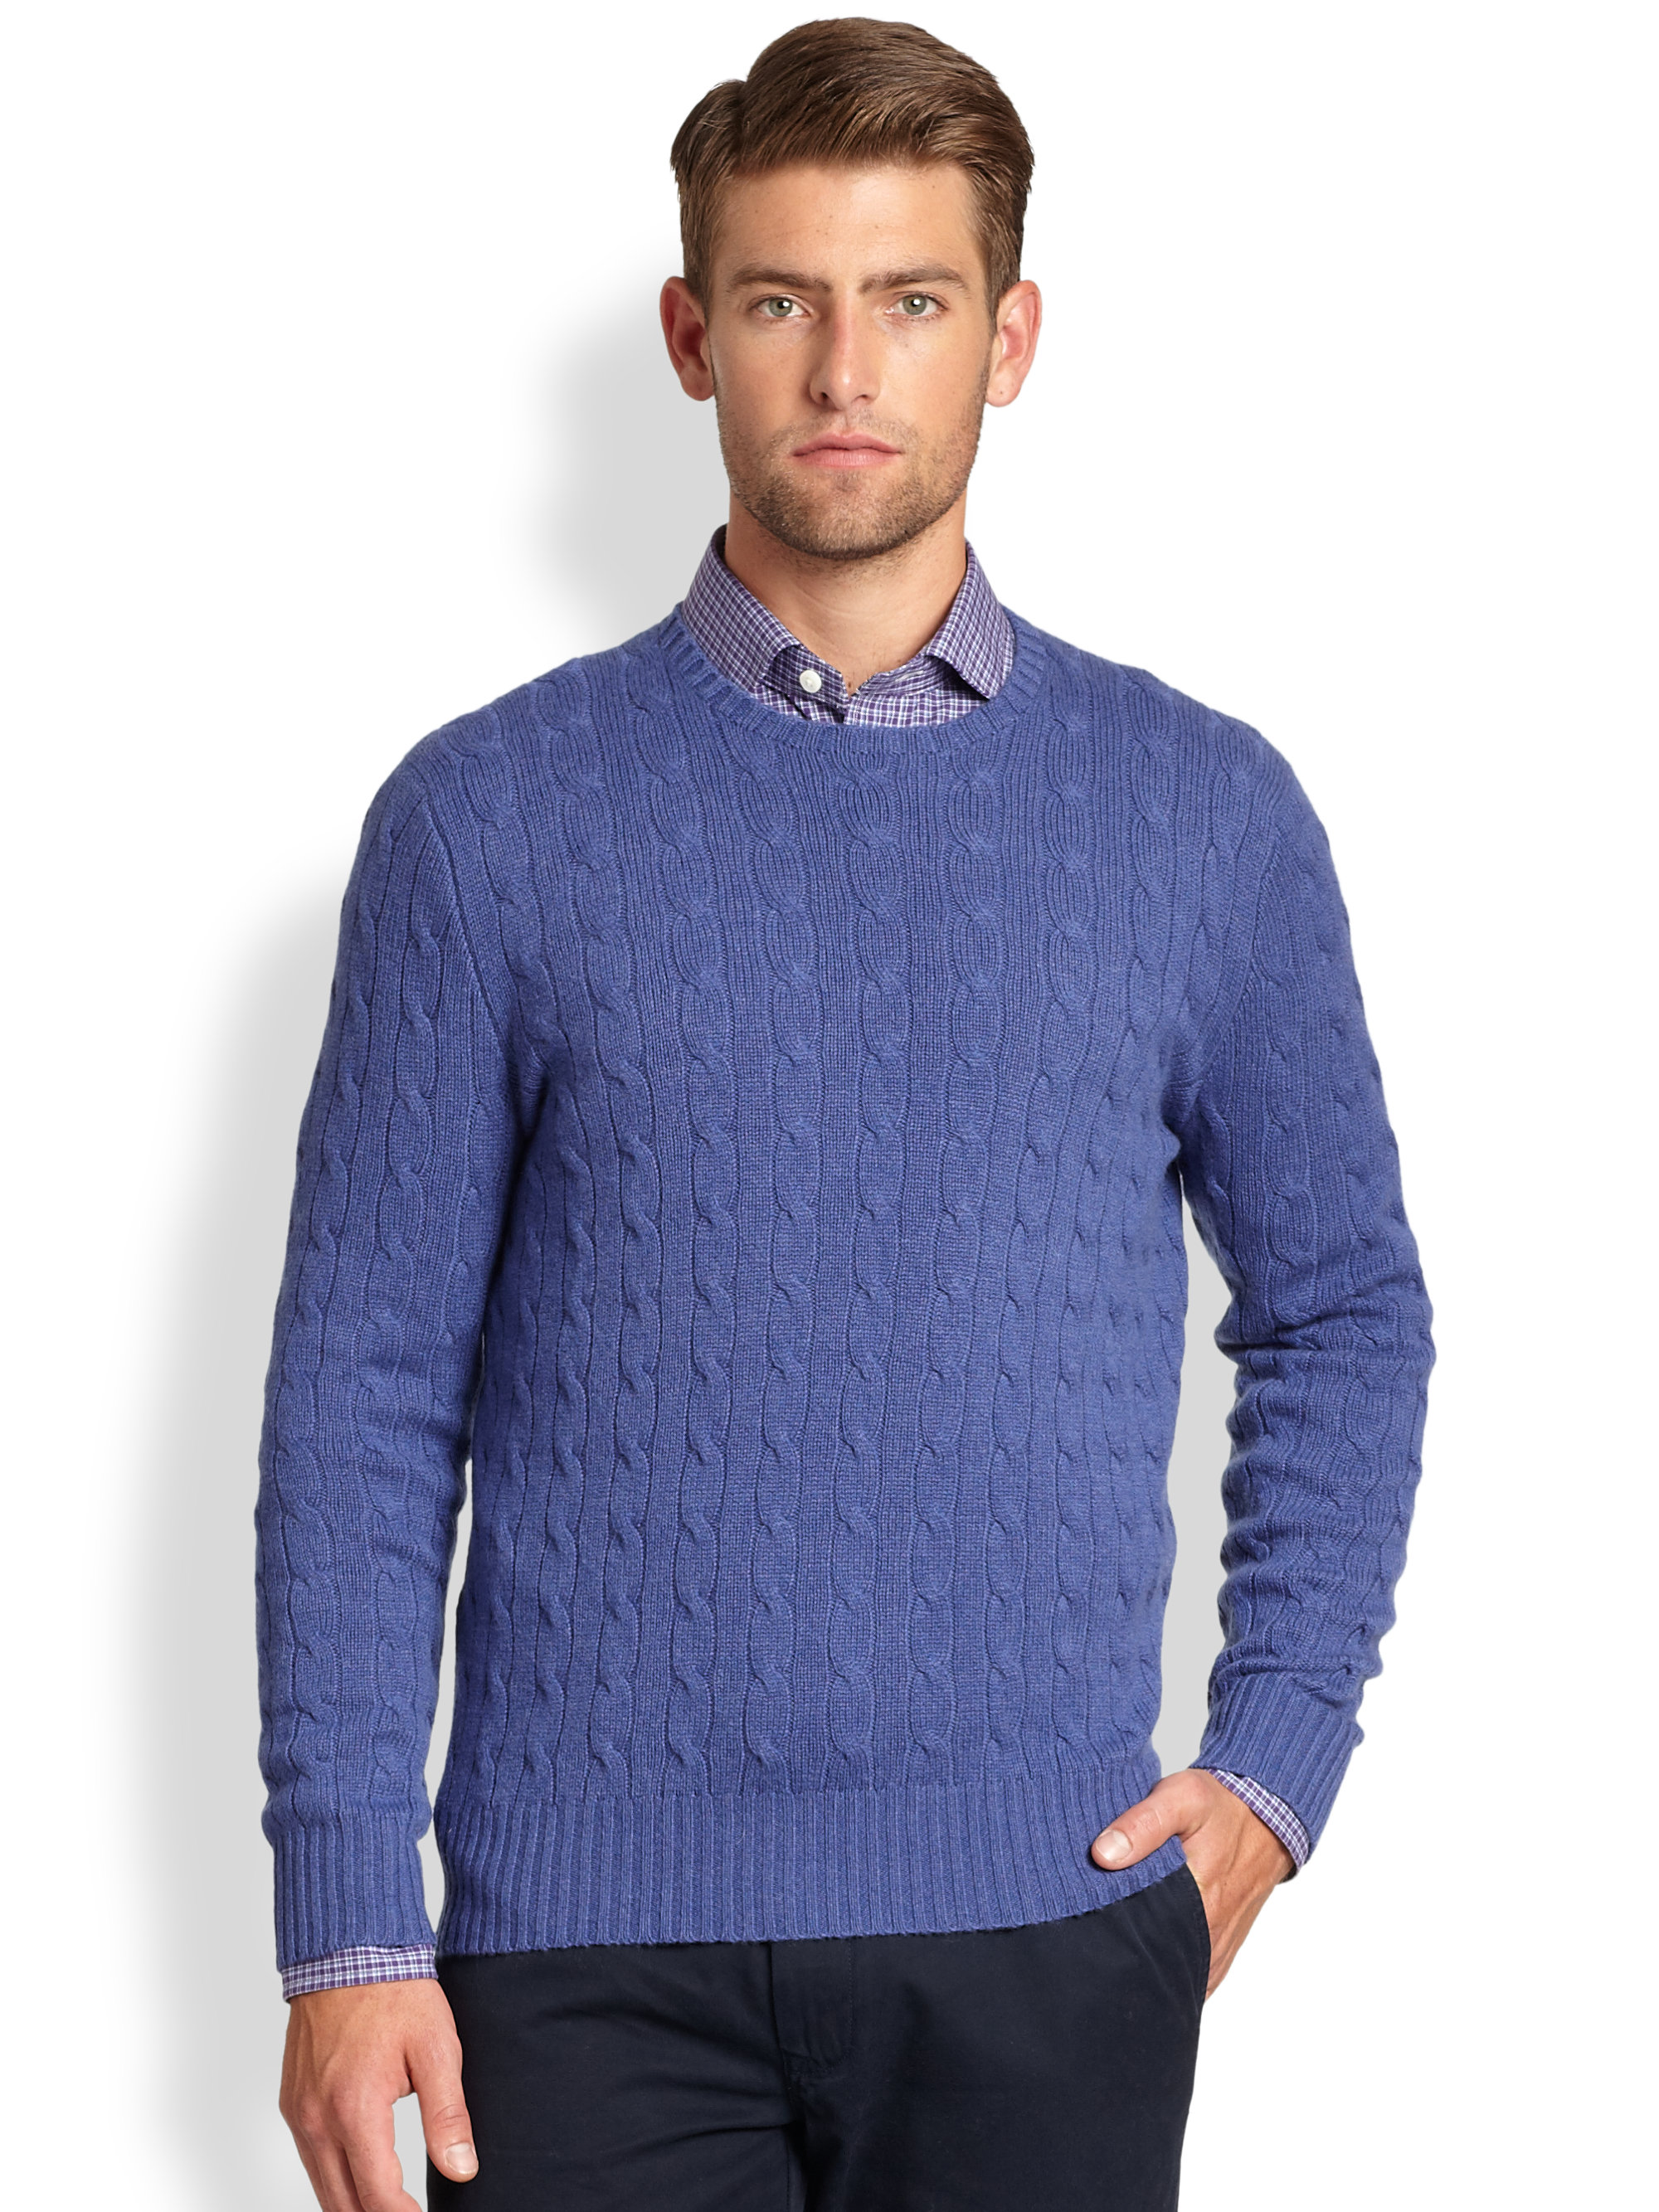 11fa1c603e Polo Ralph Lauren Cable Knit Cashmere Crewneck Sweater in Blue for ...